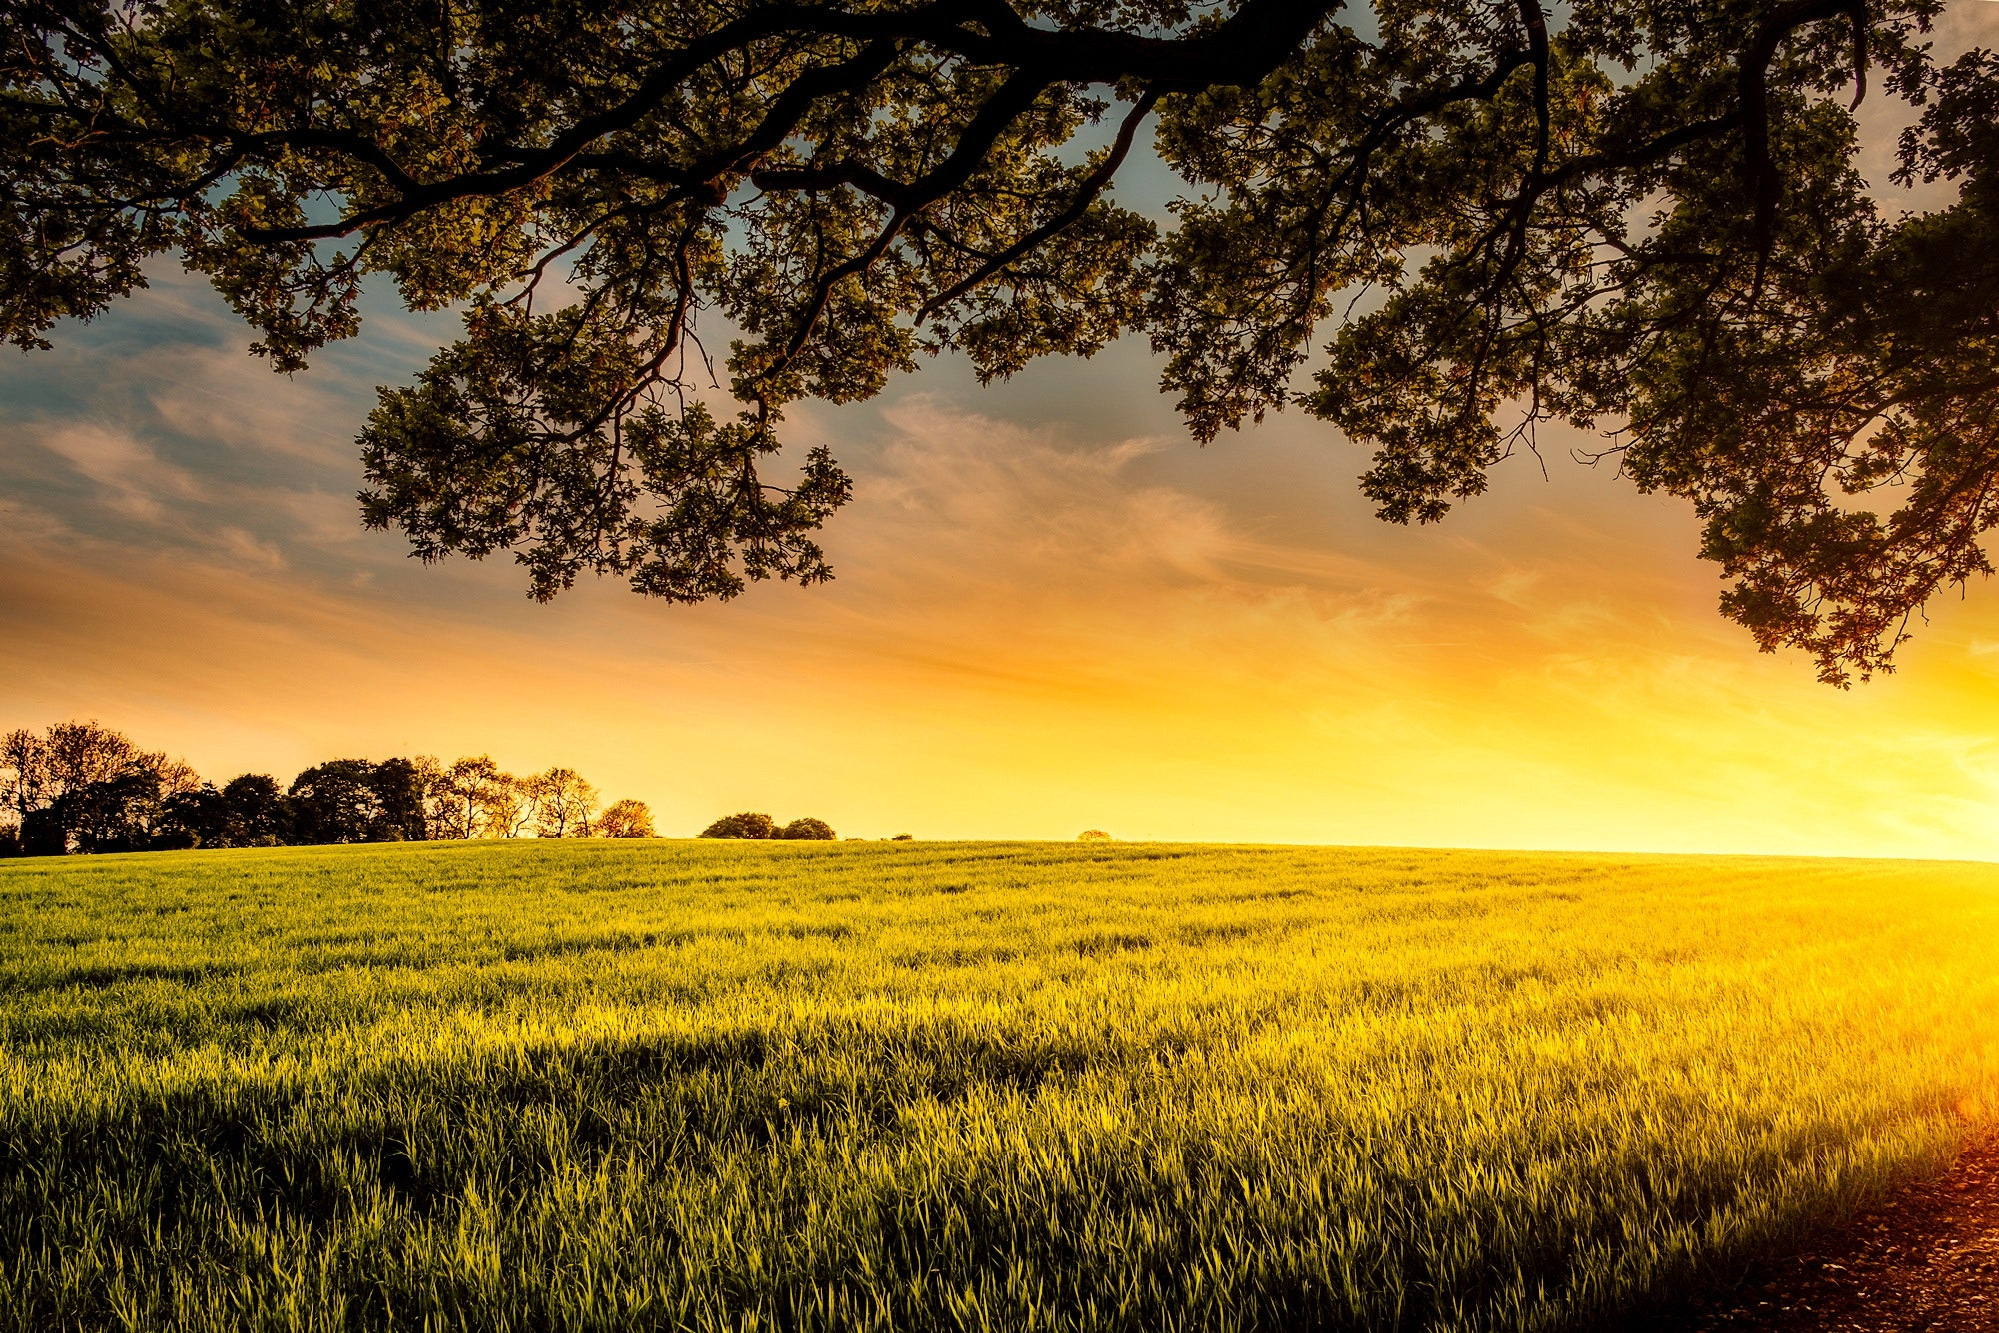 Thinking of Moving to the Countryside?